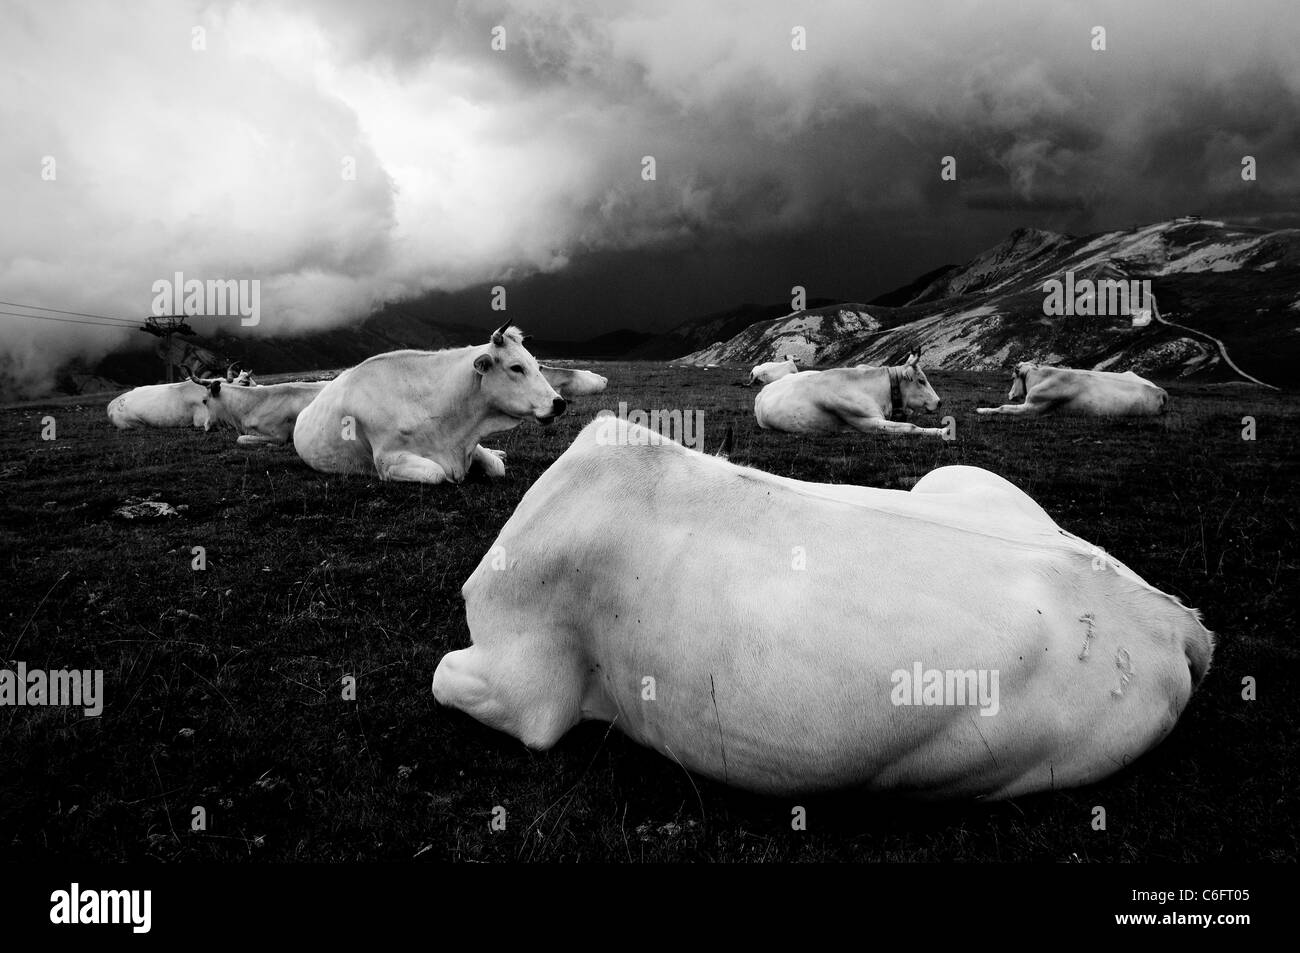 White cows on a cloudy mountain - Stock Image